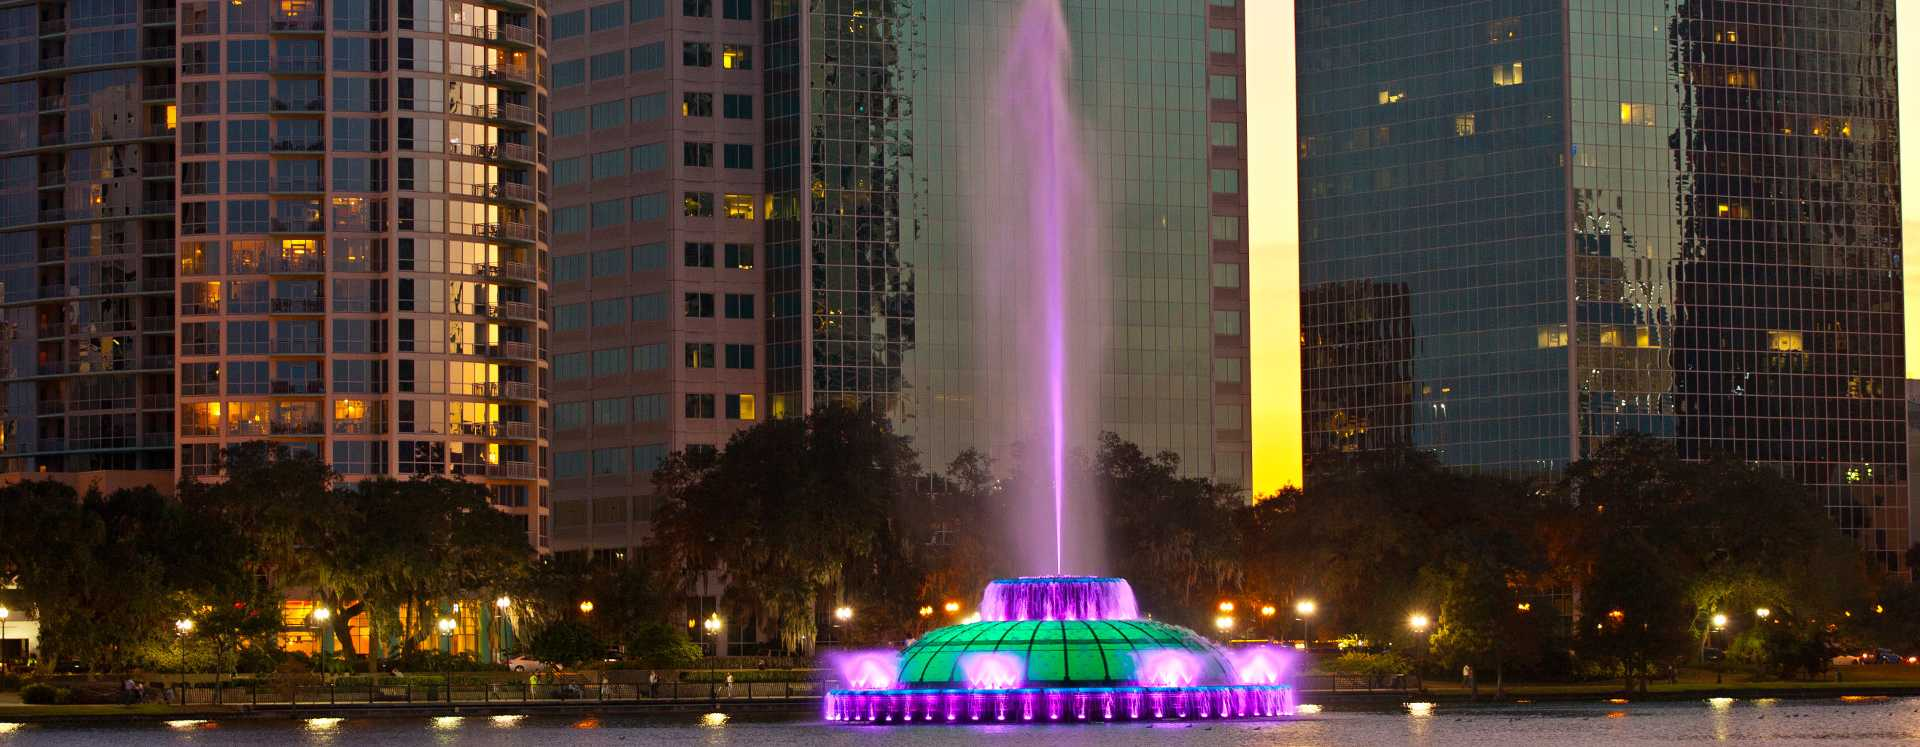 Fountain at Lake Eola in downtown Orlando at dusk